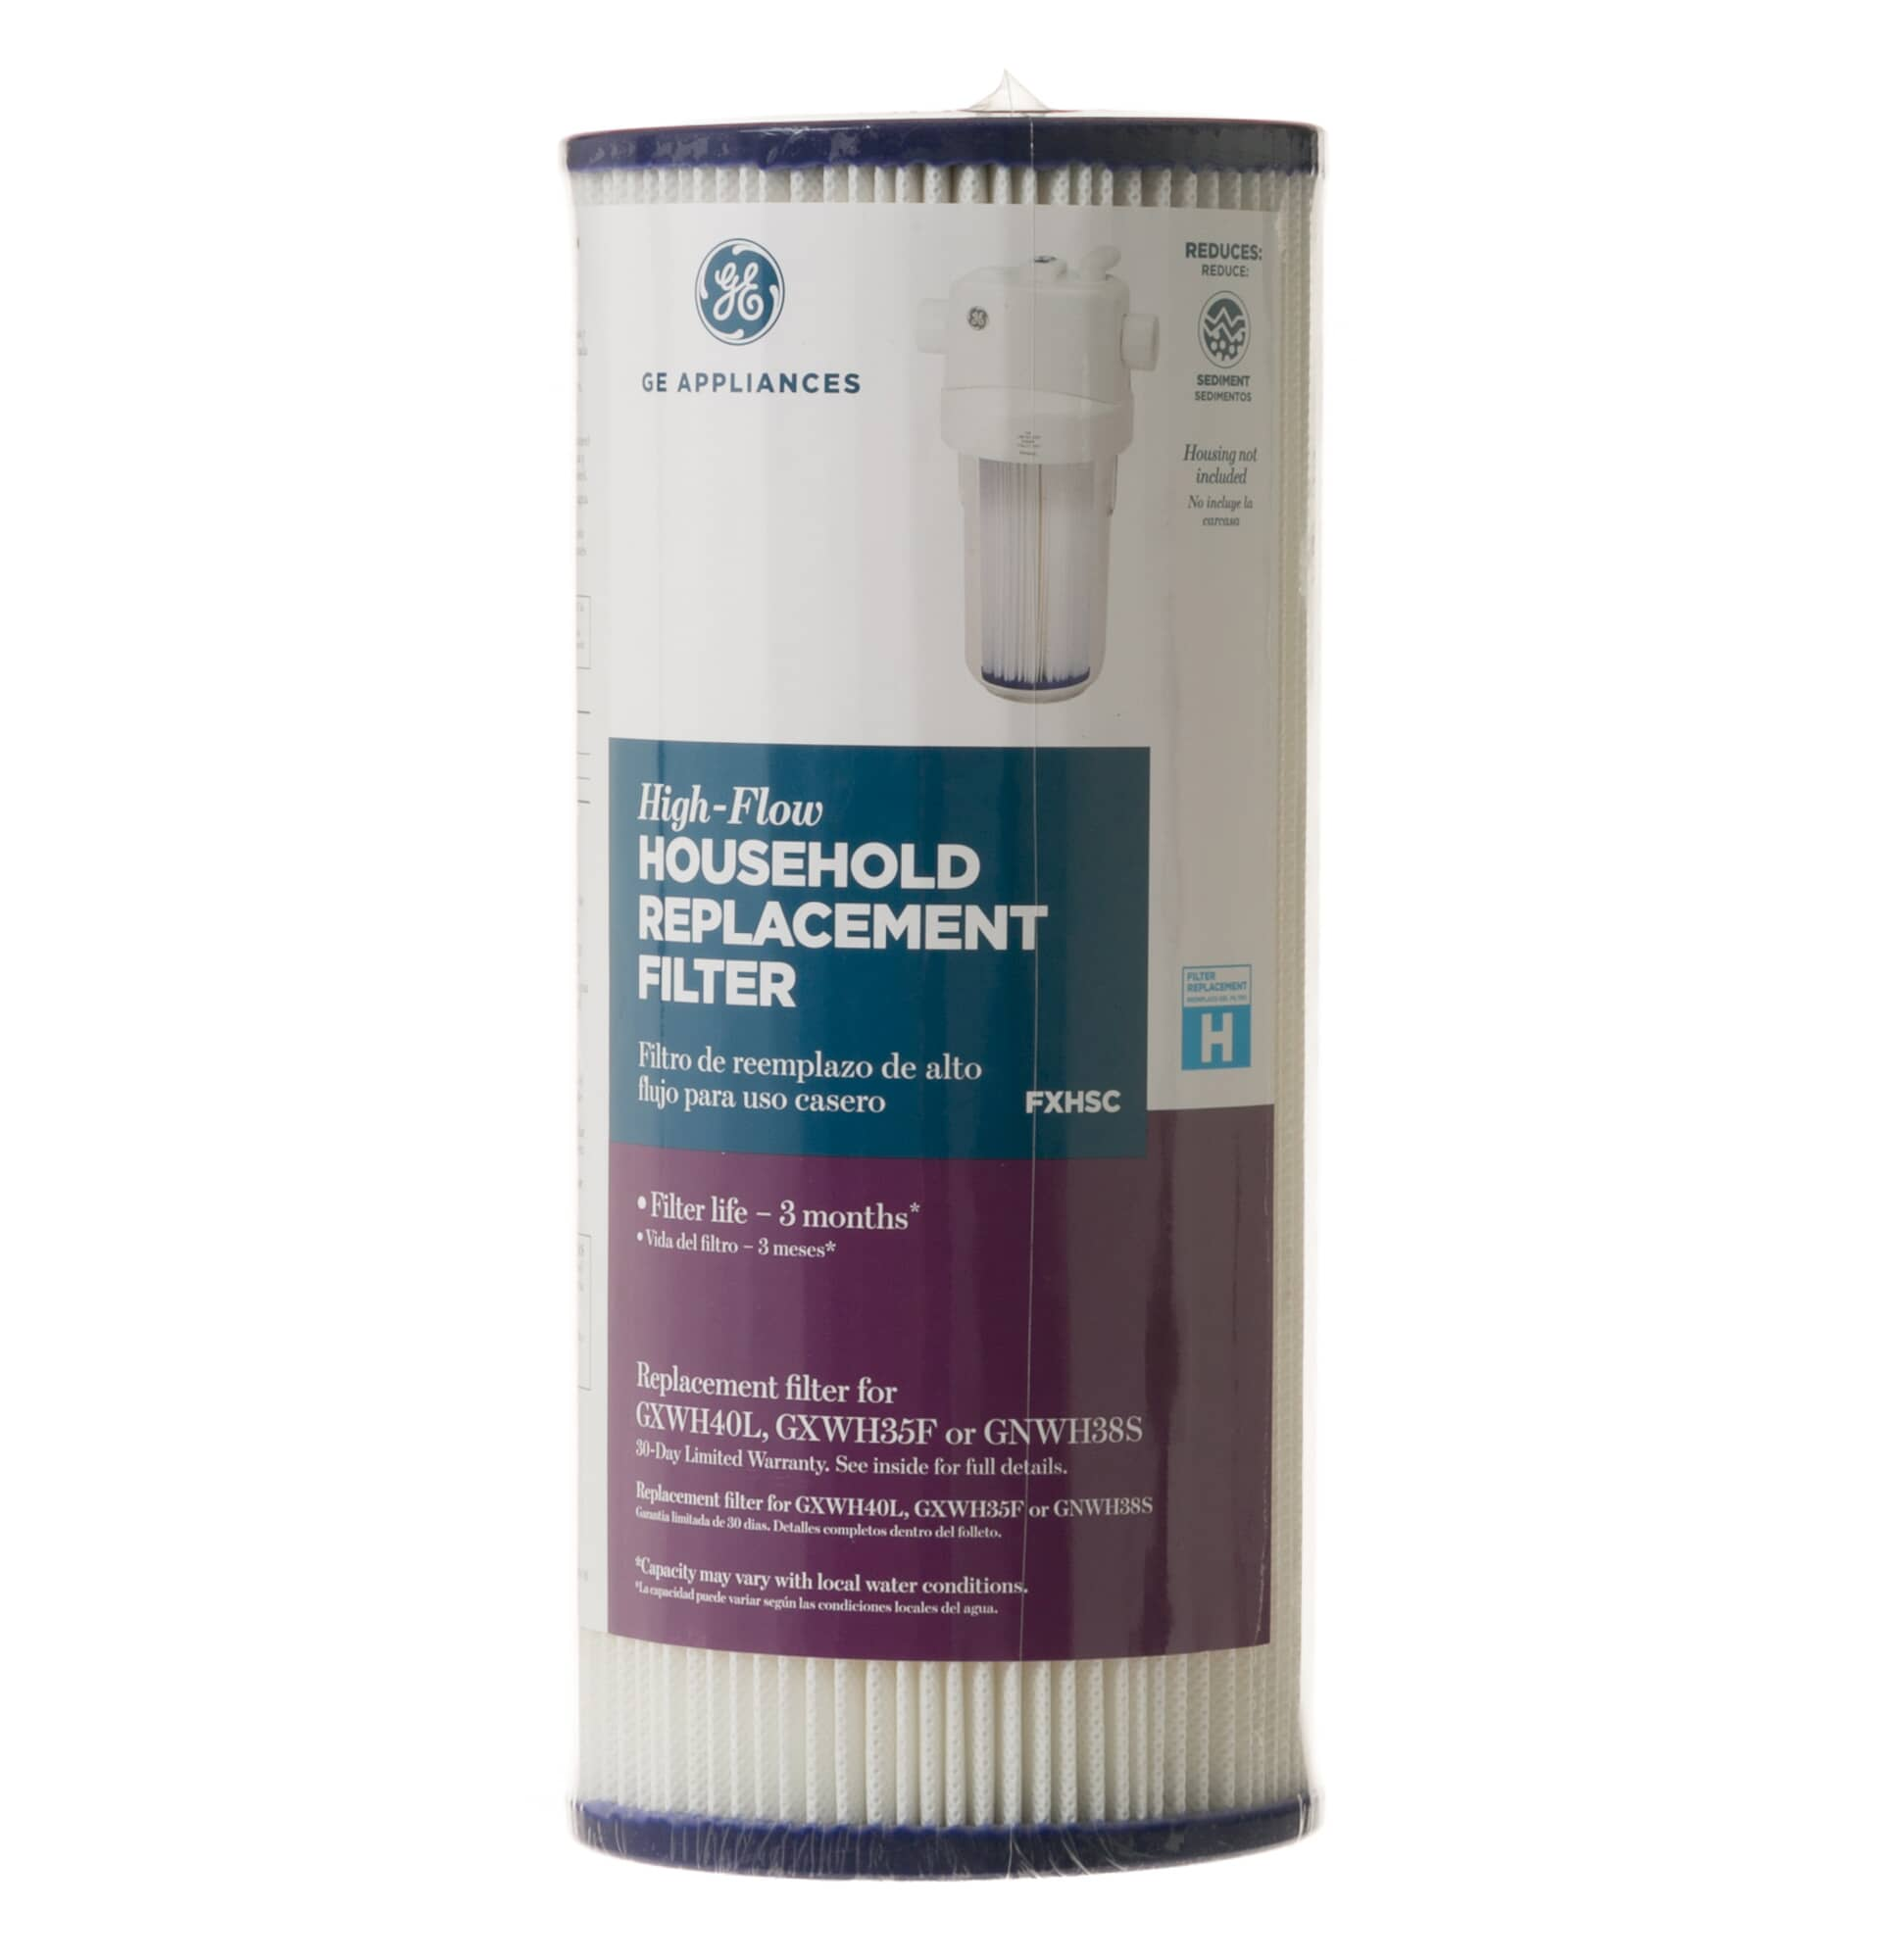 GE ApplianceFXHSCSEDIMENT FILTER REPLACEMENT